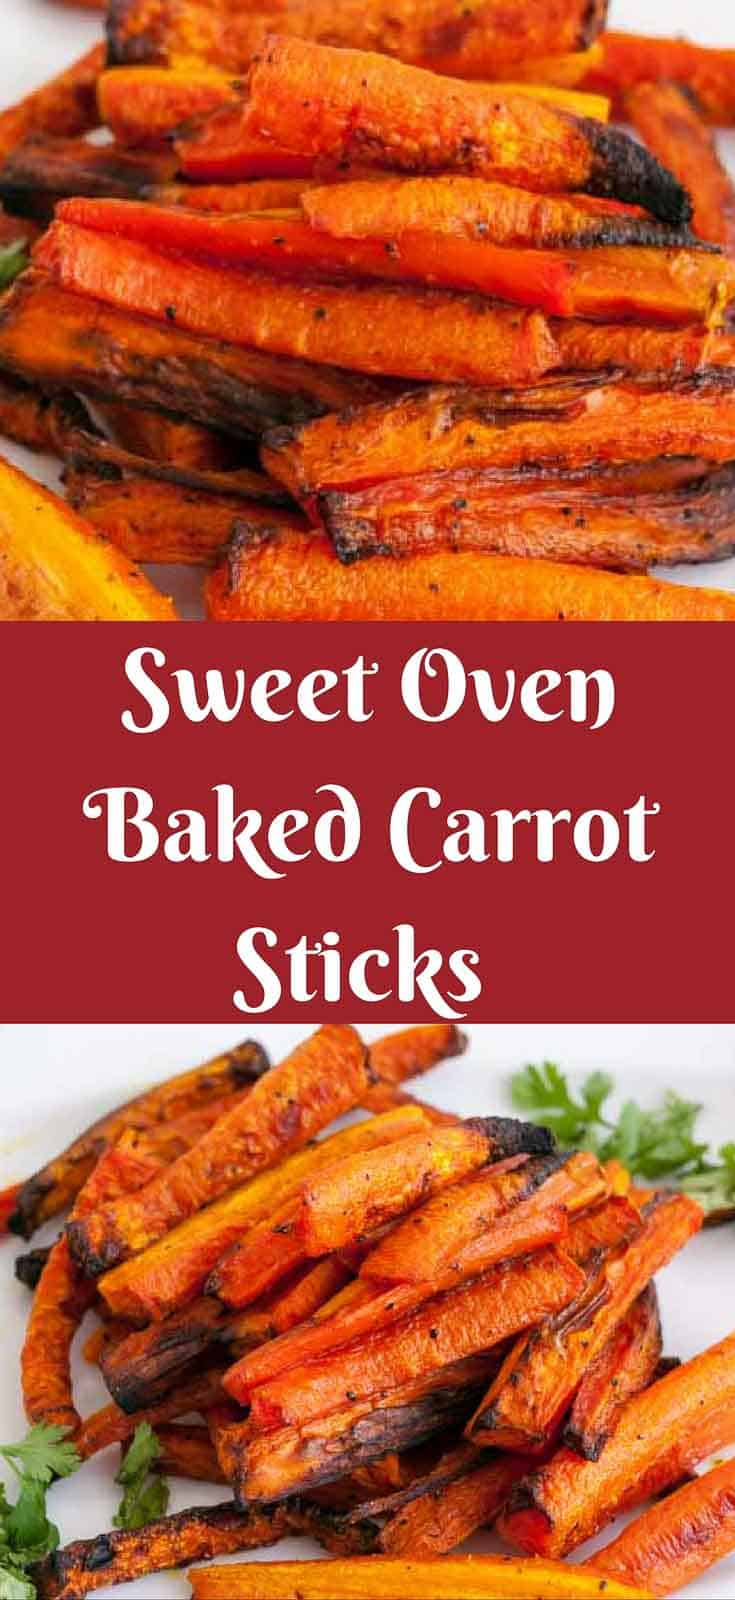 The oven baked carrot sticks are an easy way to eat heart healthy veggies more often. Baking veggies makes them sweeter and more delicious. The simple, easy and effortless recipe will have you and the family eating carrots often because they take less than 30 minutes to make.